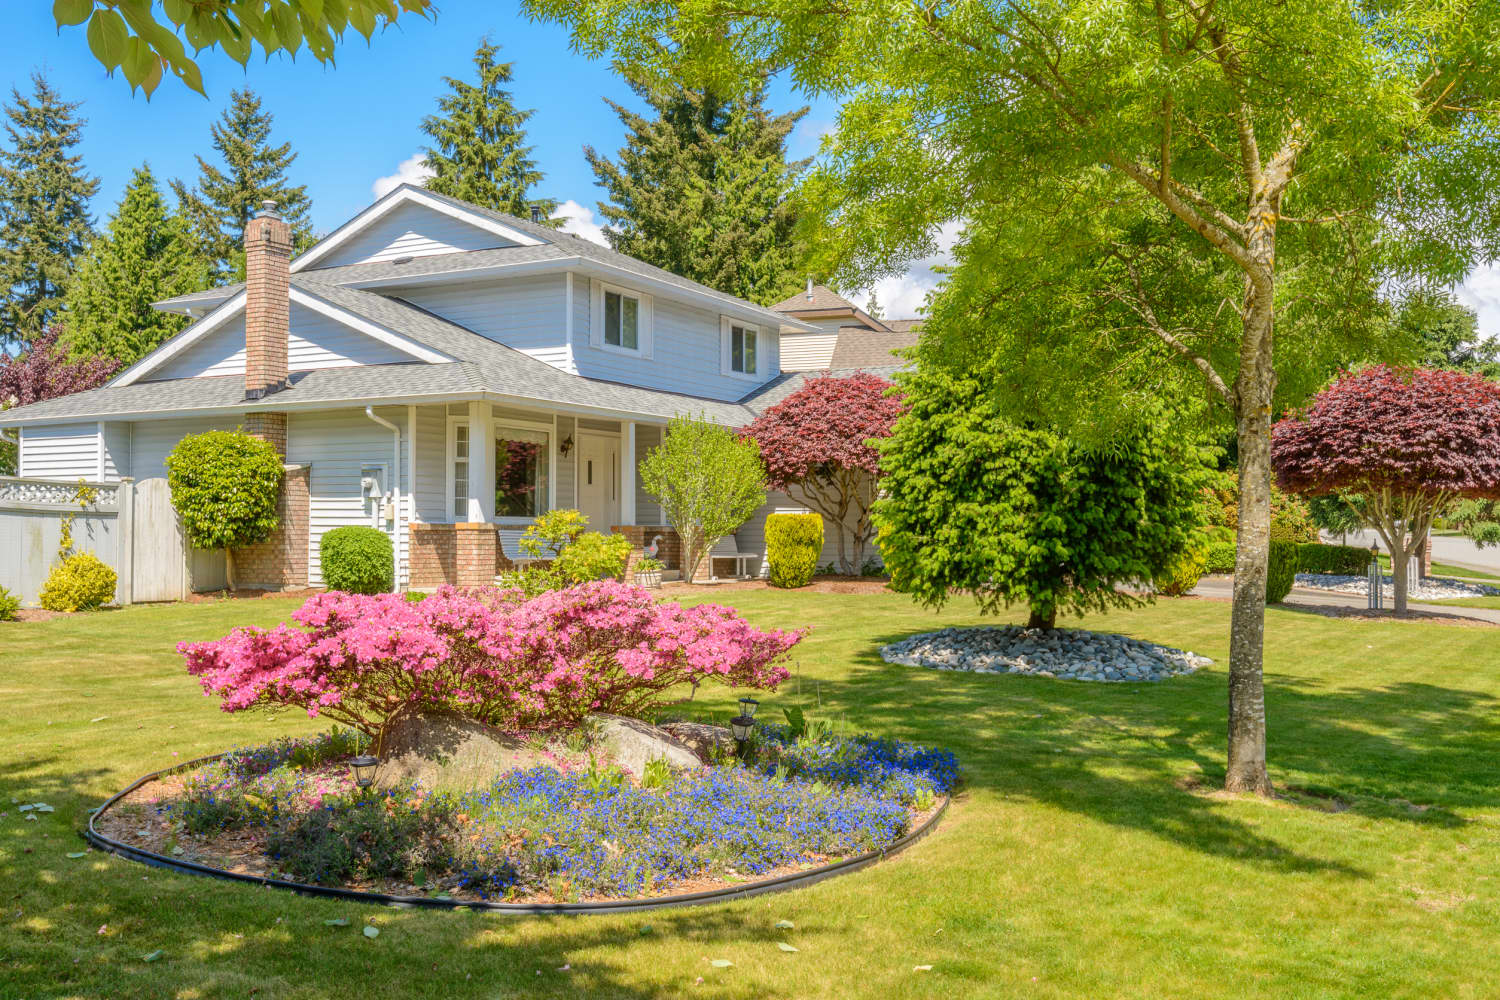 The Plants Real Estate Agents Wish You'd Stop Putting in Your Yard